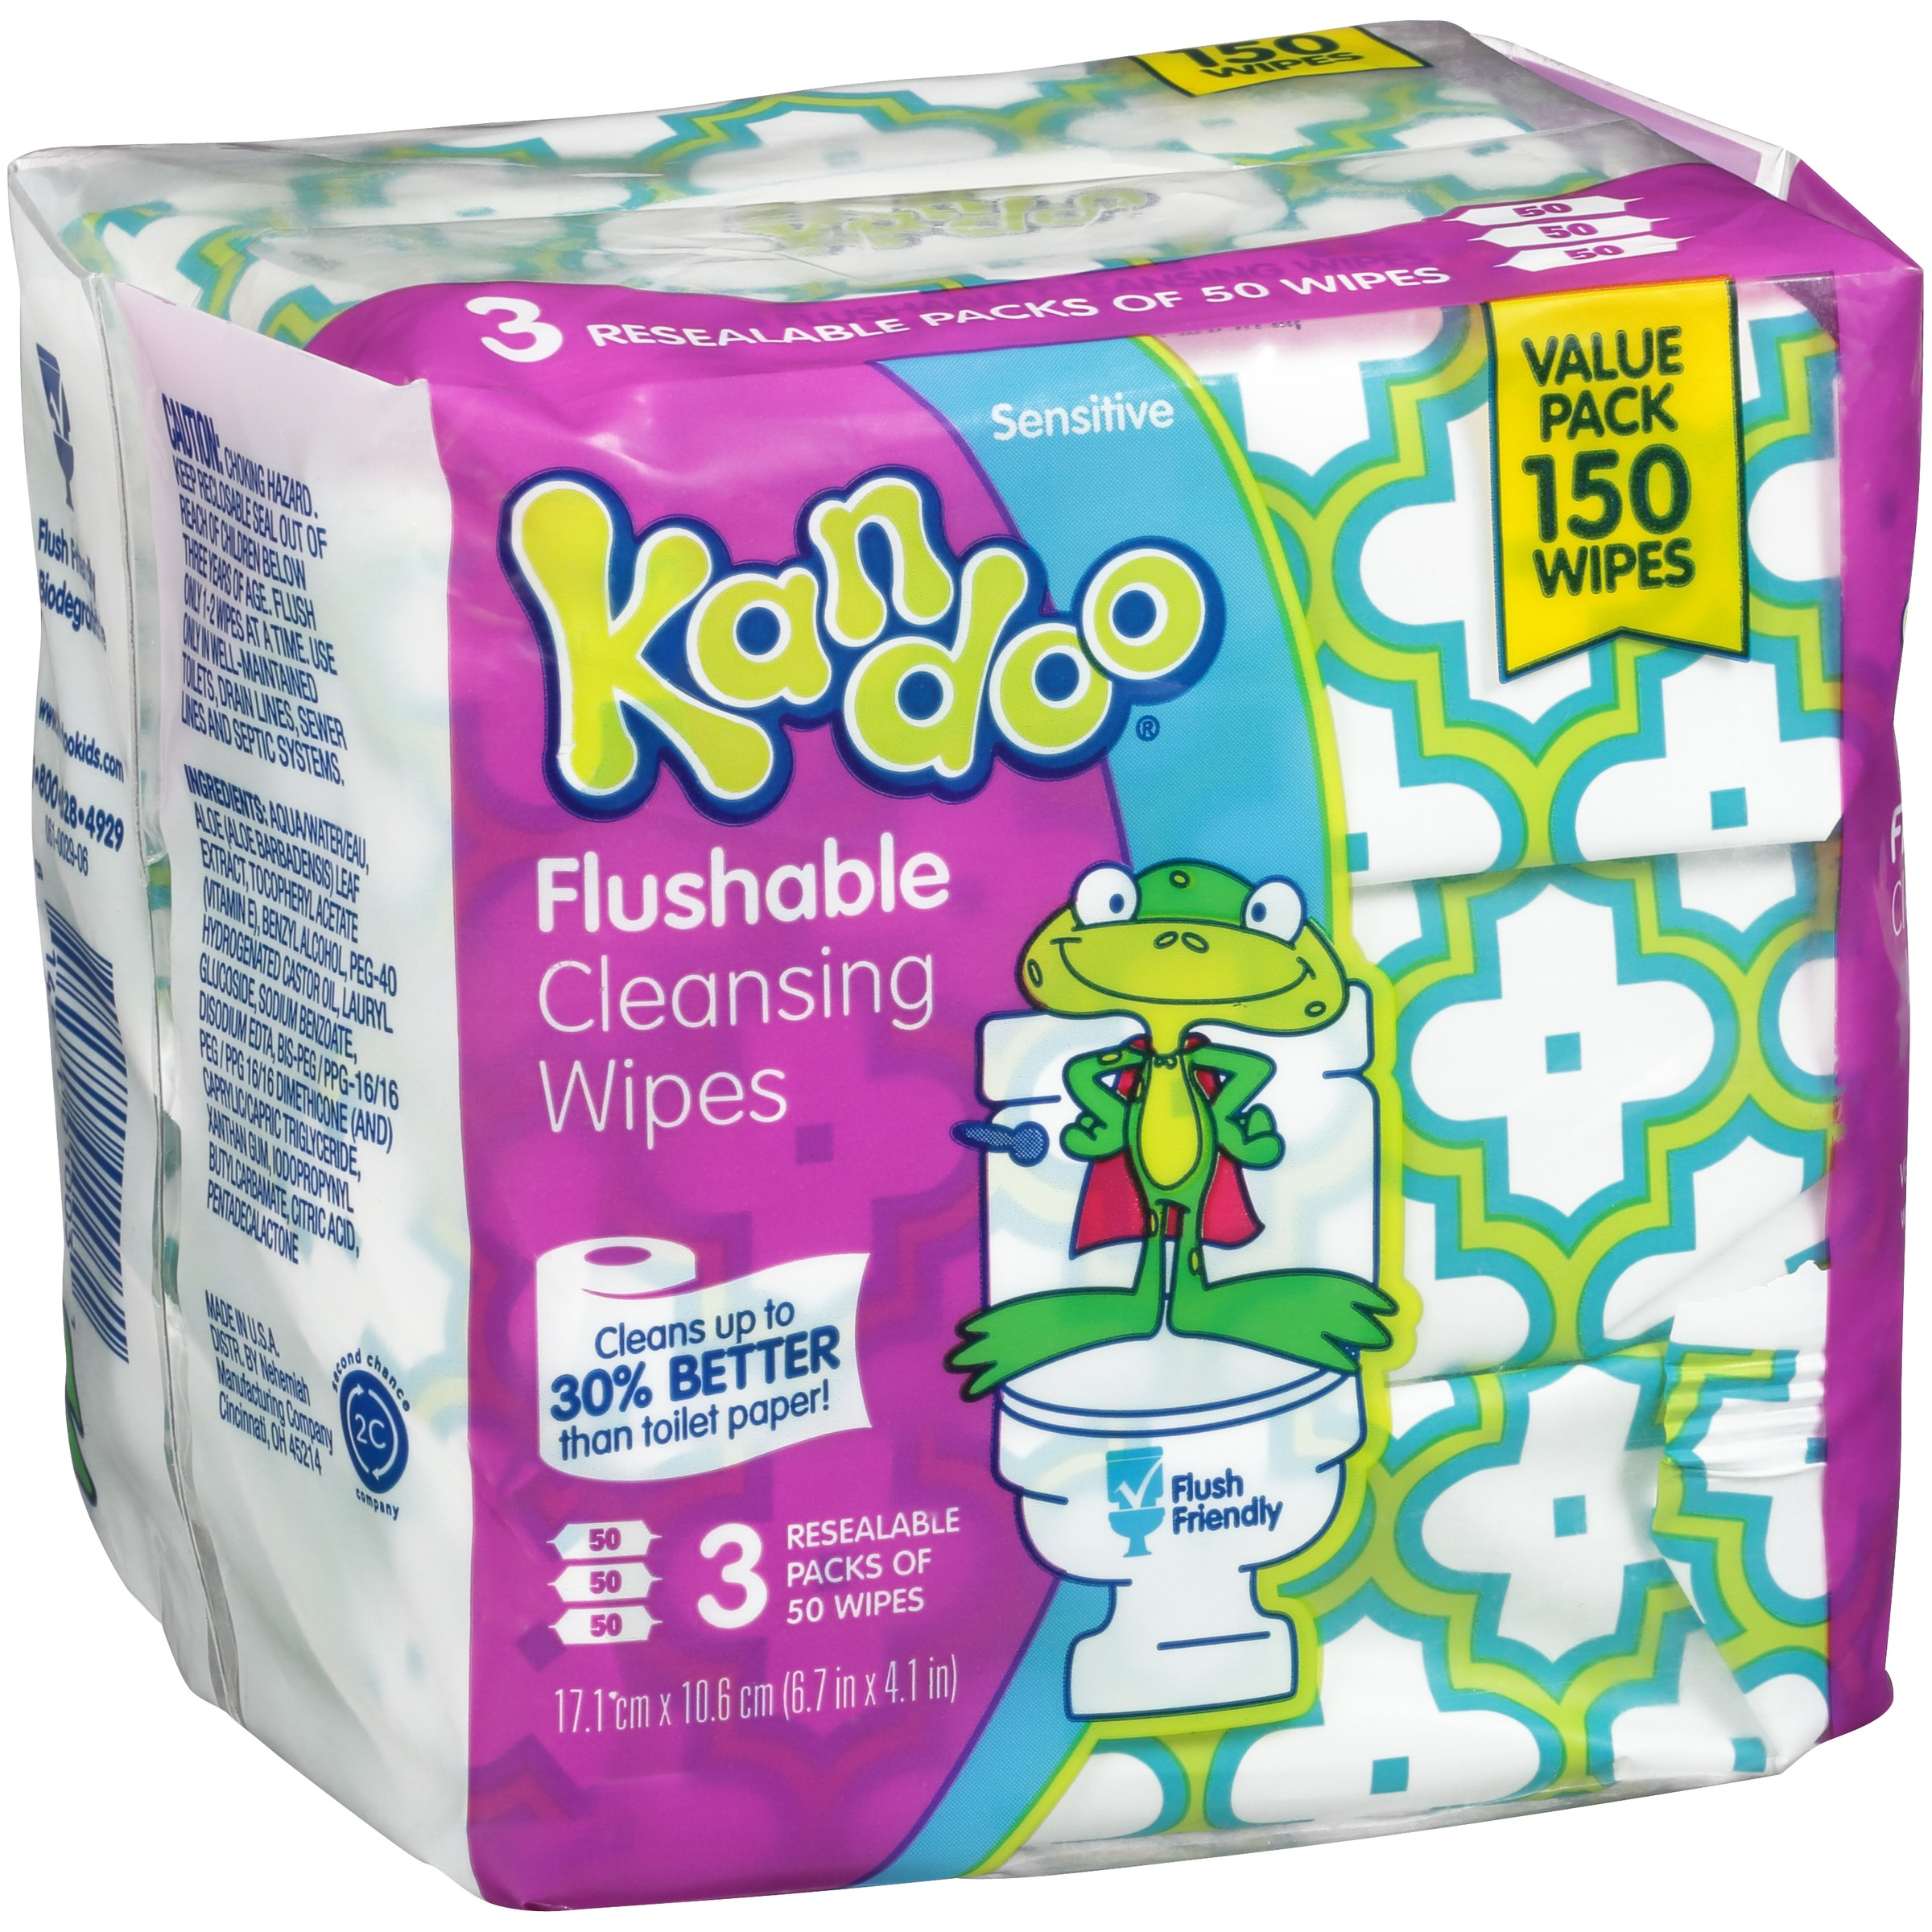 Kandoo Sensitive Flushable Baby Wipes, 3 packs of 50 (150 count)